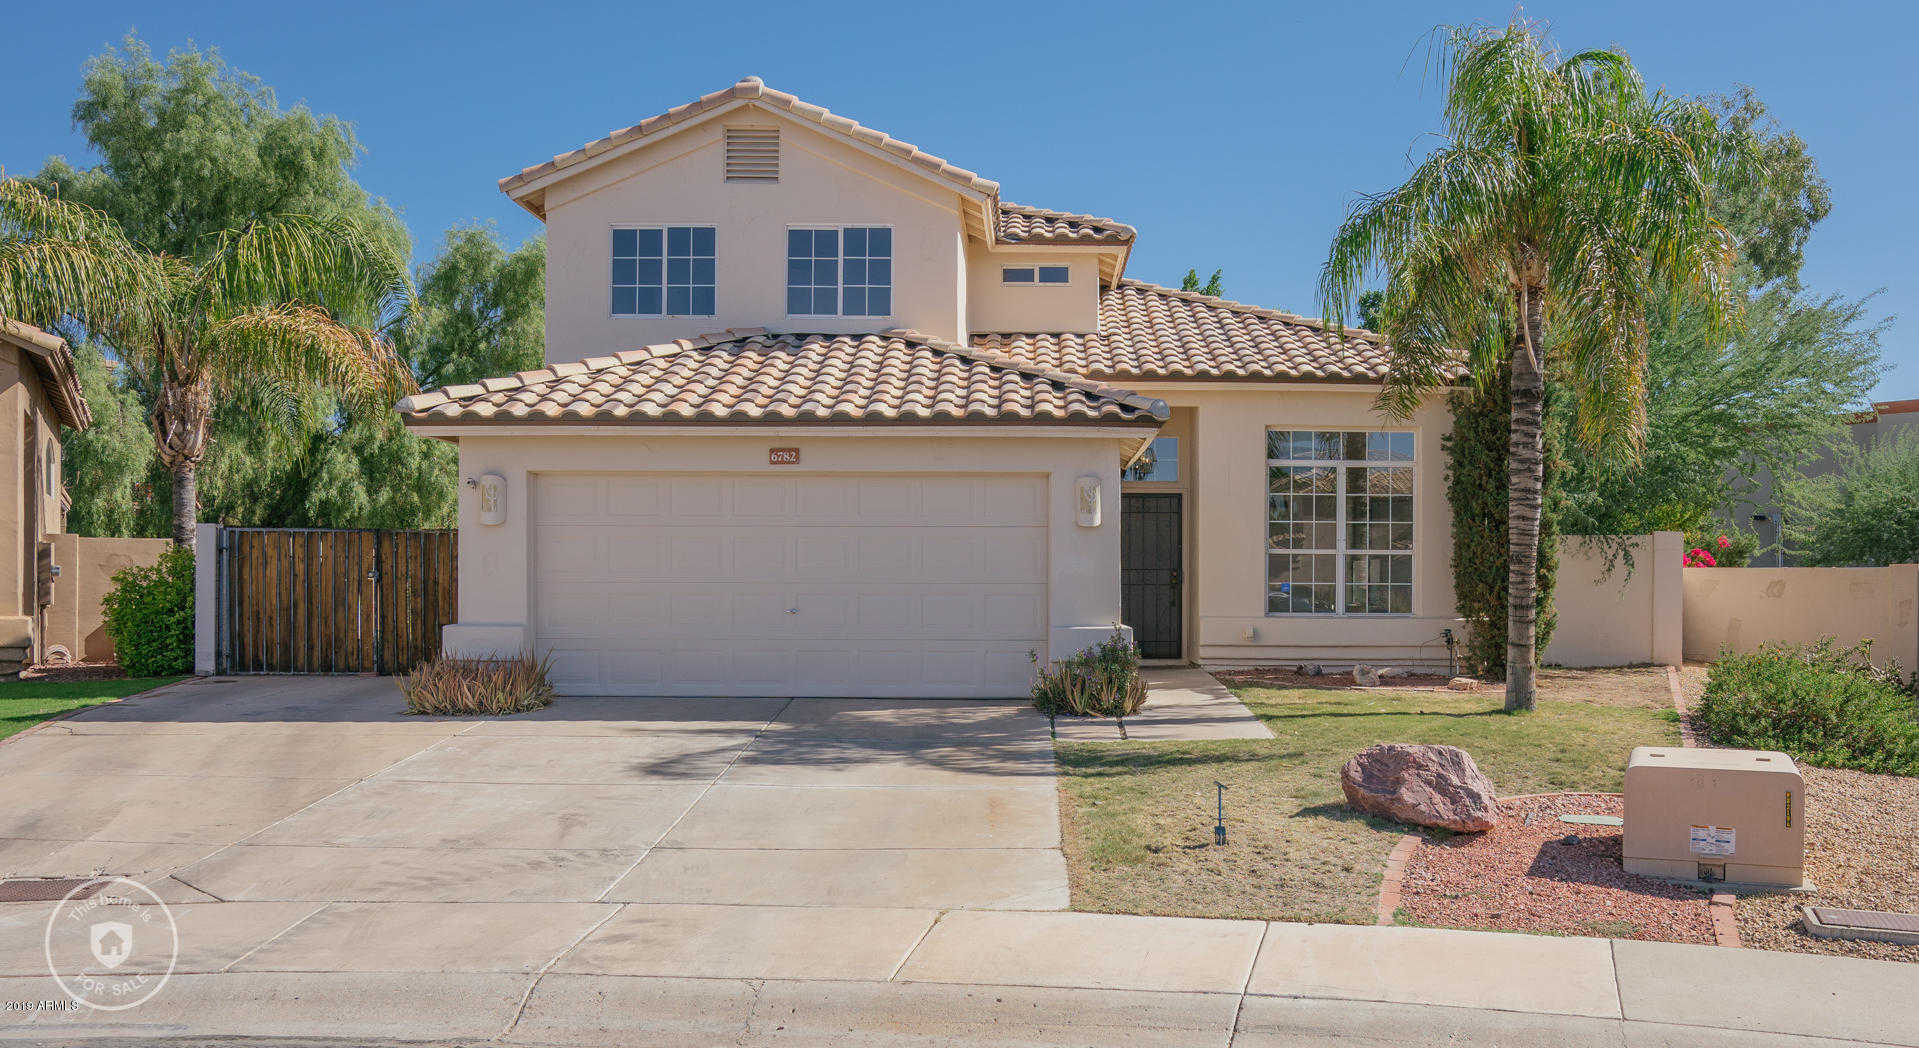 $315,000 - 4Br/3Ba - Home for Sale in Hillcrest Ranch Parcel B Lot 134-246__tr A-f, Glendale